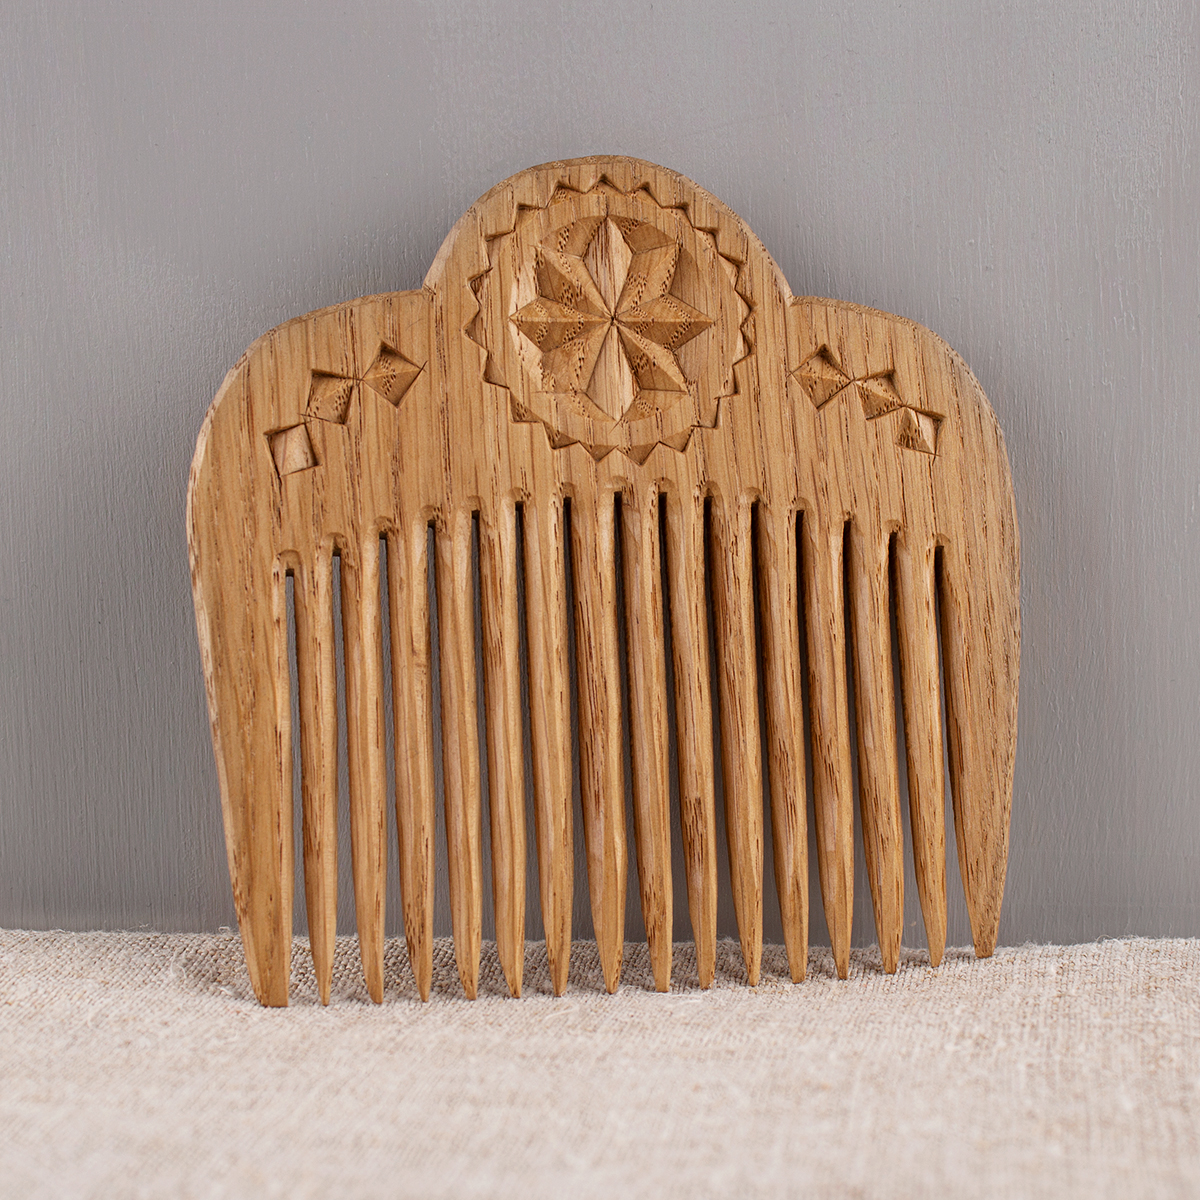 Oak comb with Siversky carving